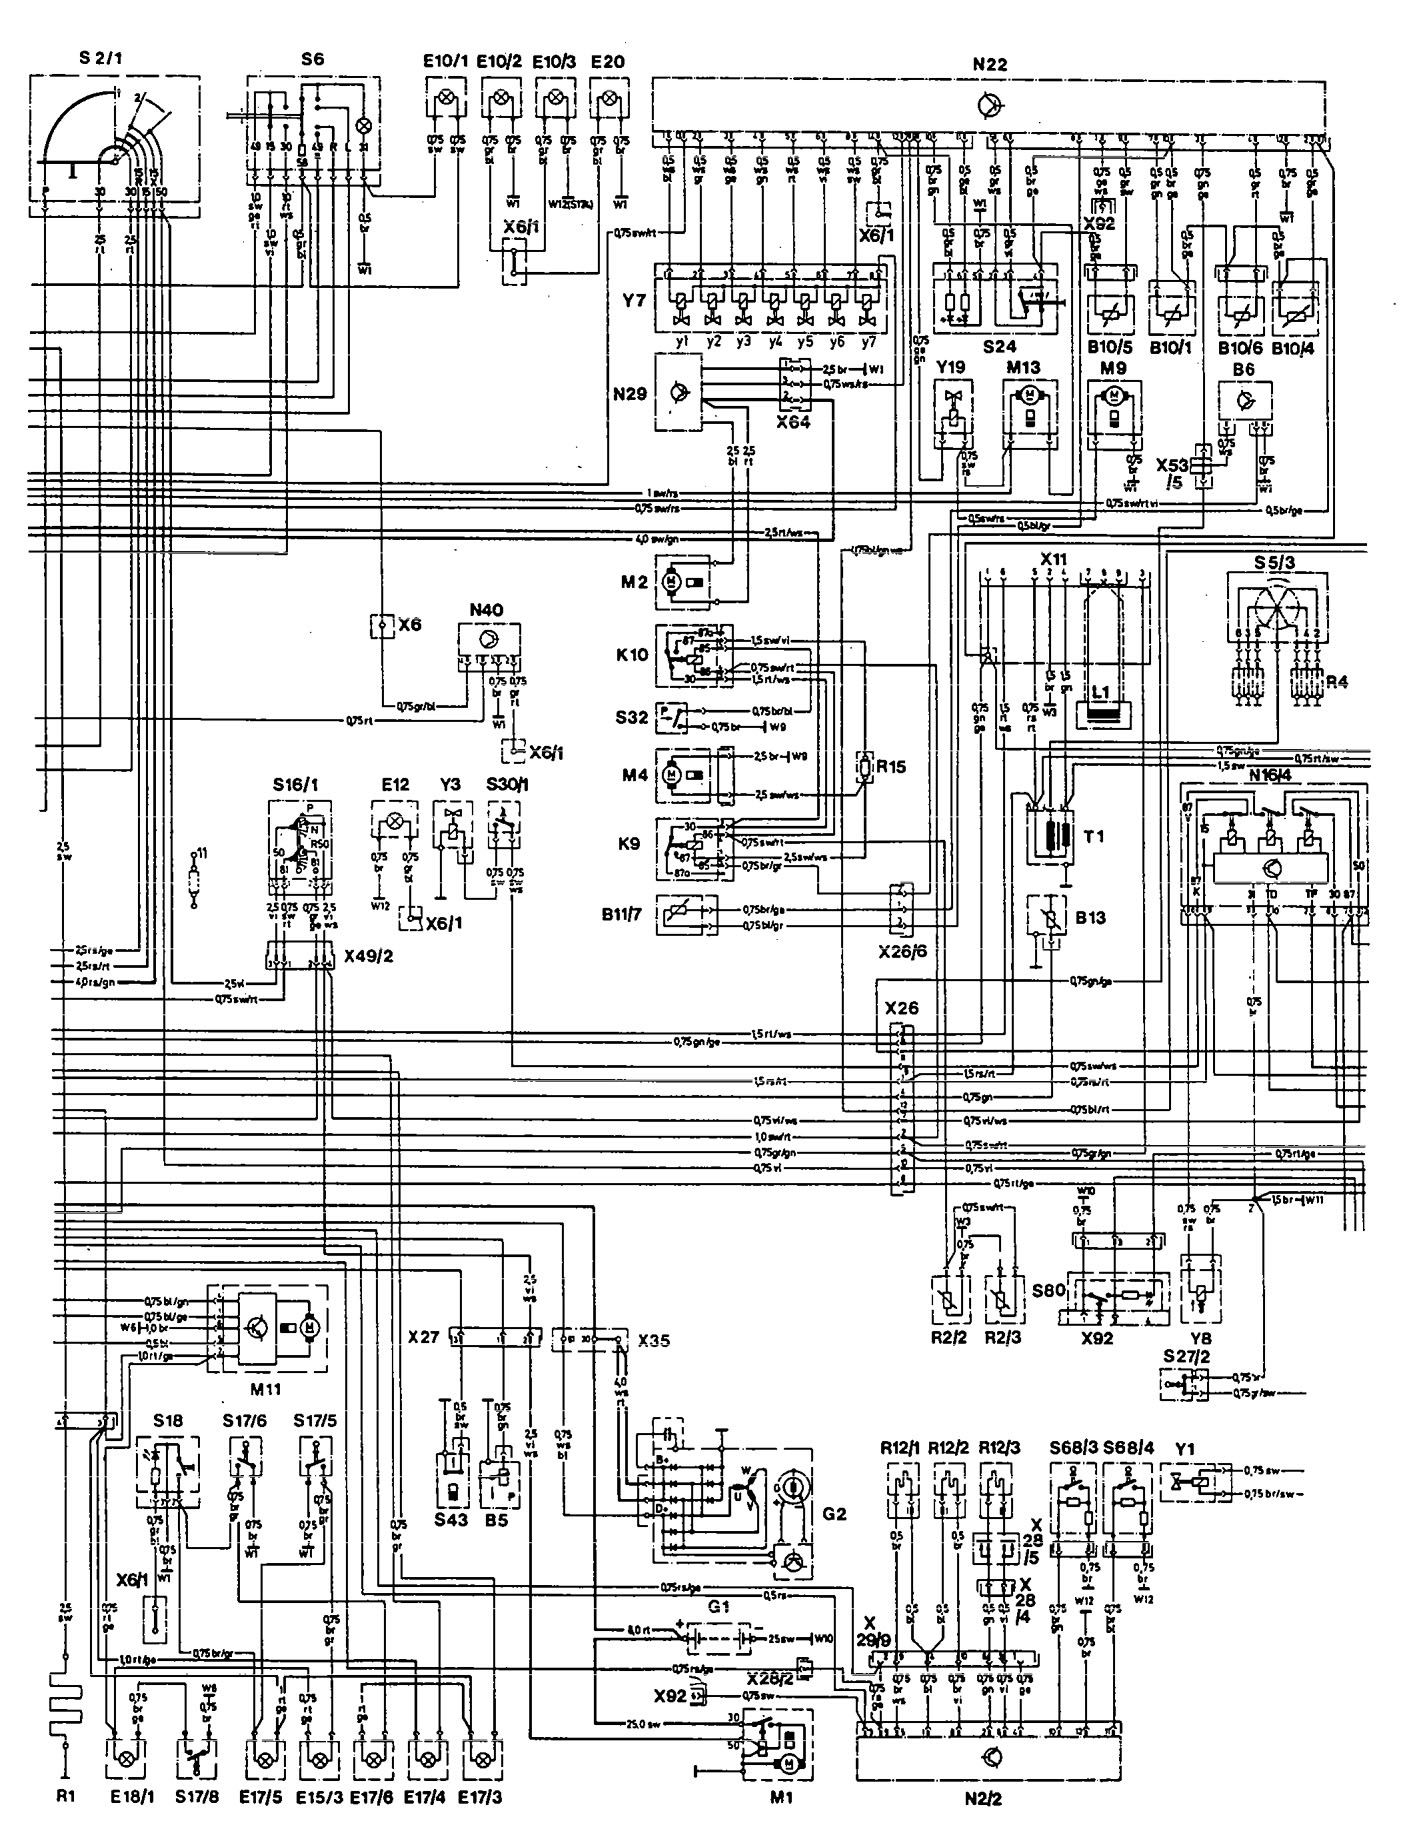 Topkick Washer Pump Wiring Diagram Library. Mercedesbenz 300e Wiring Diagram Wiperwasher Part. Wiring. Topkick Wiper Wiring Diagram At Scoala.co